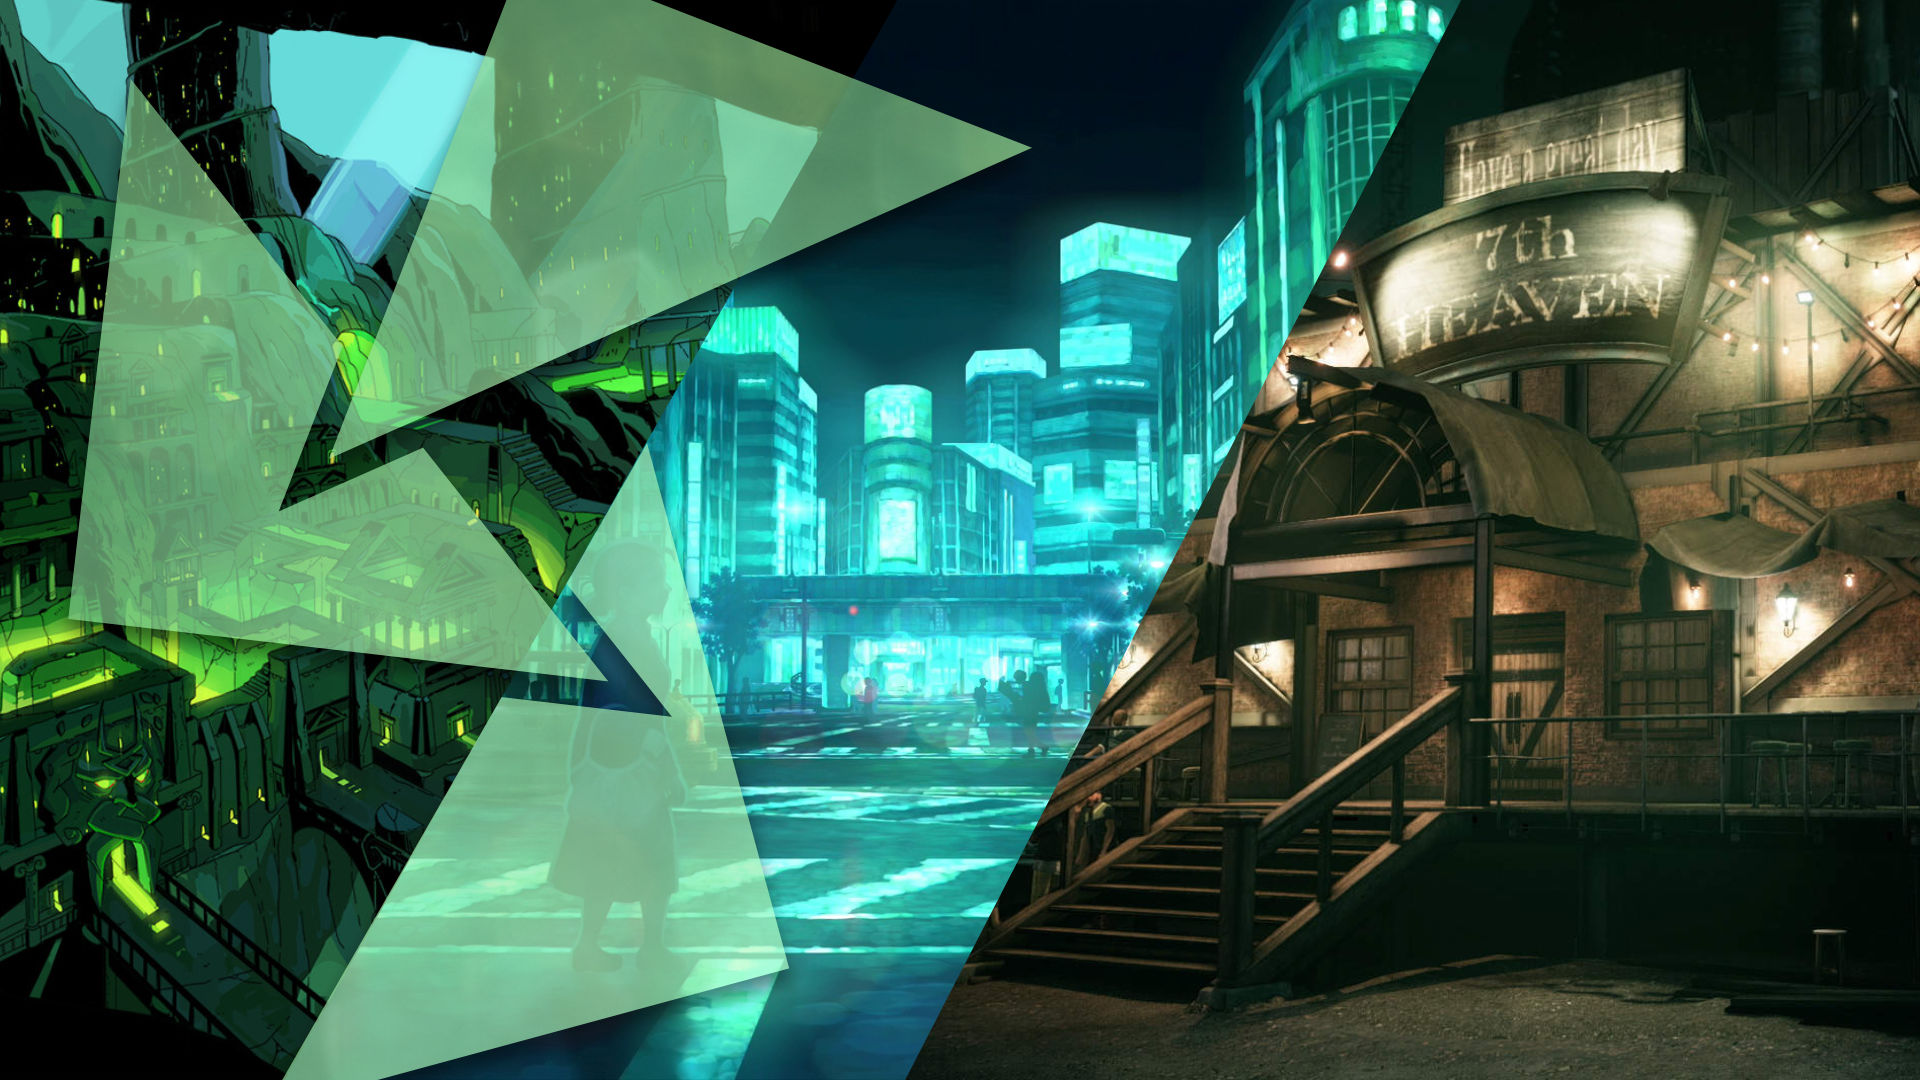 3 different pieces of city art from 3 different video games, all in green hues.